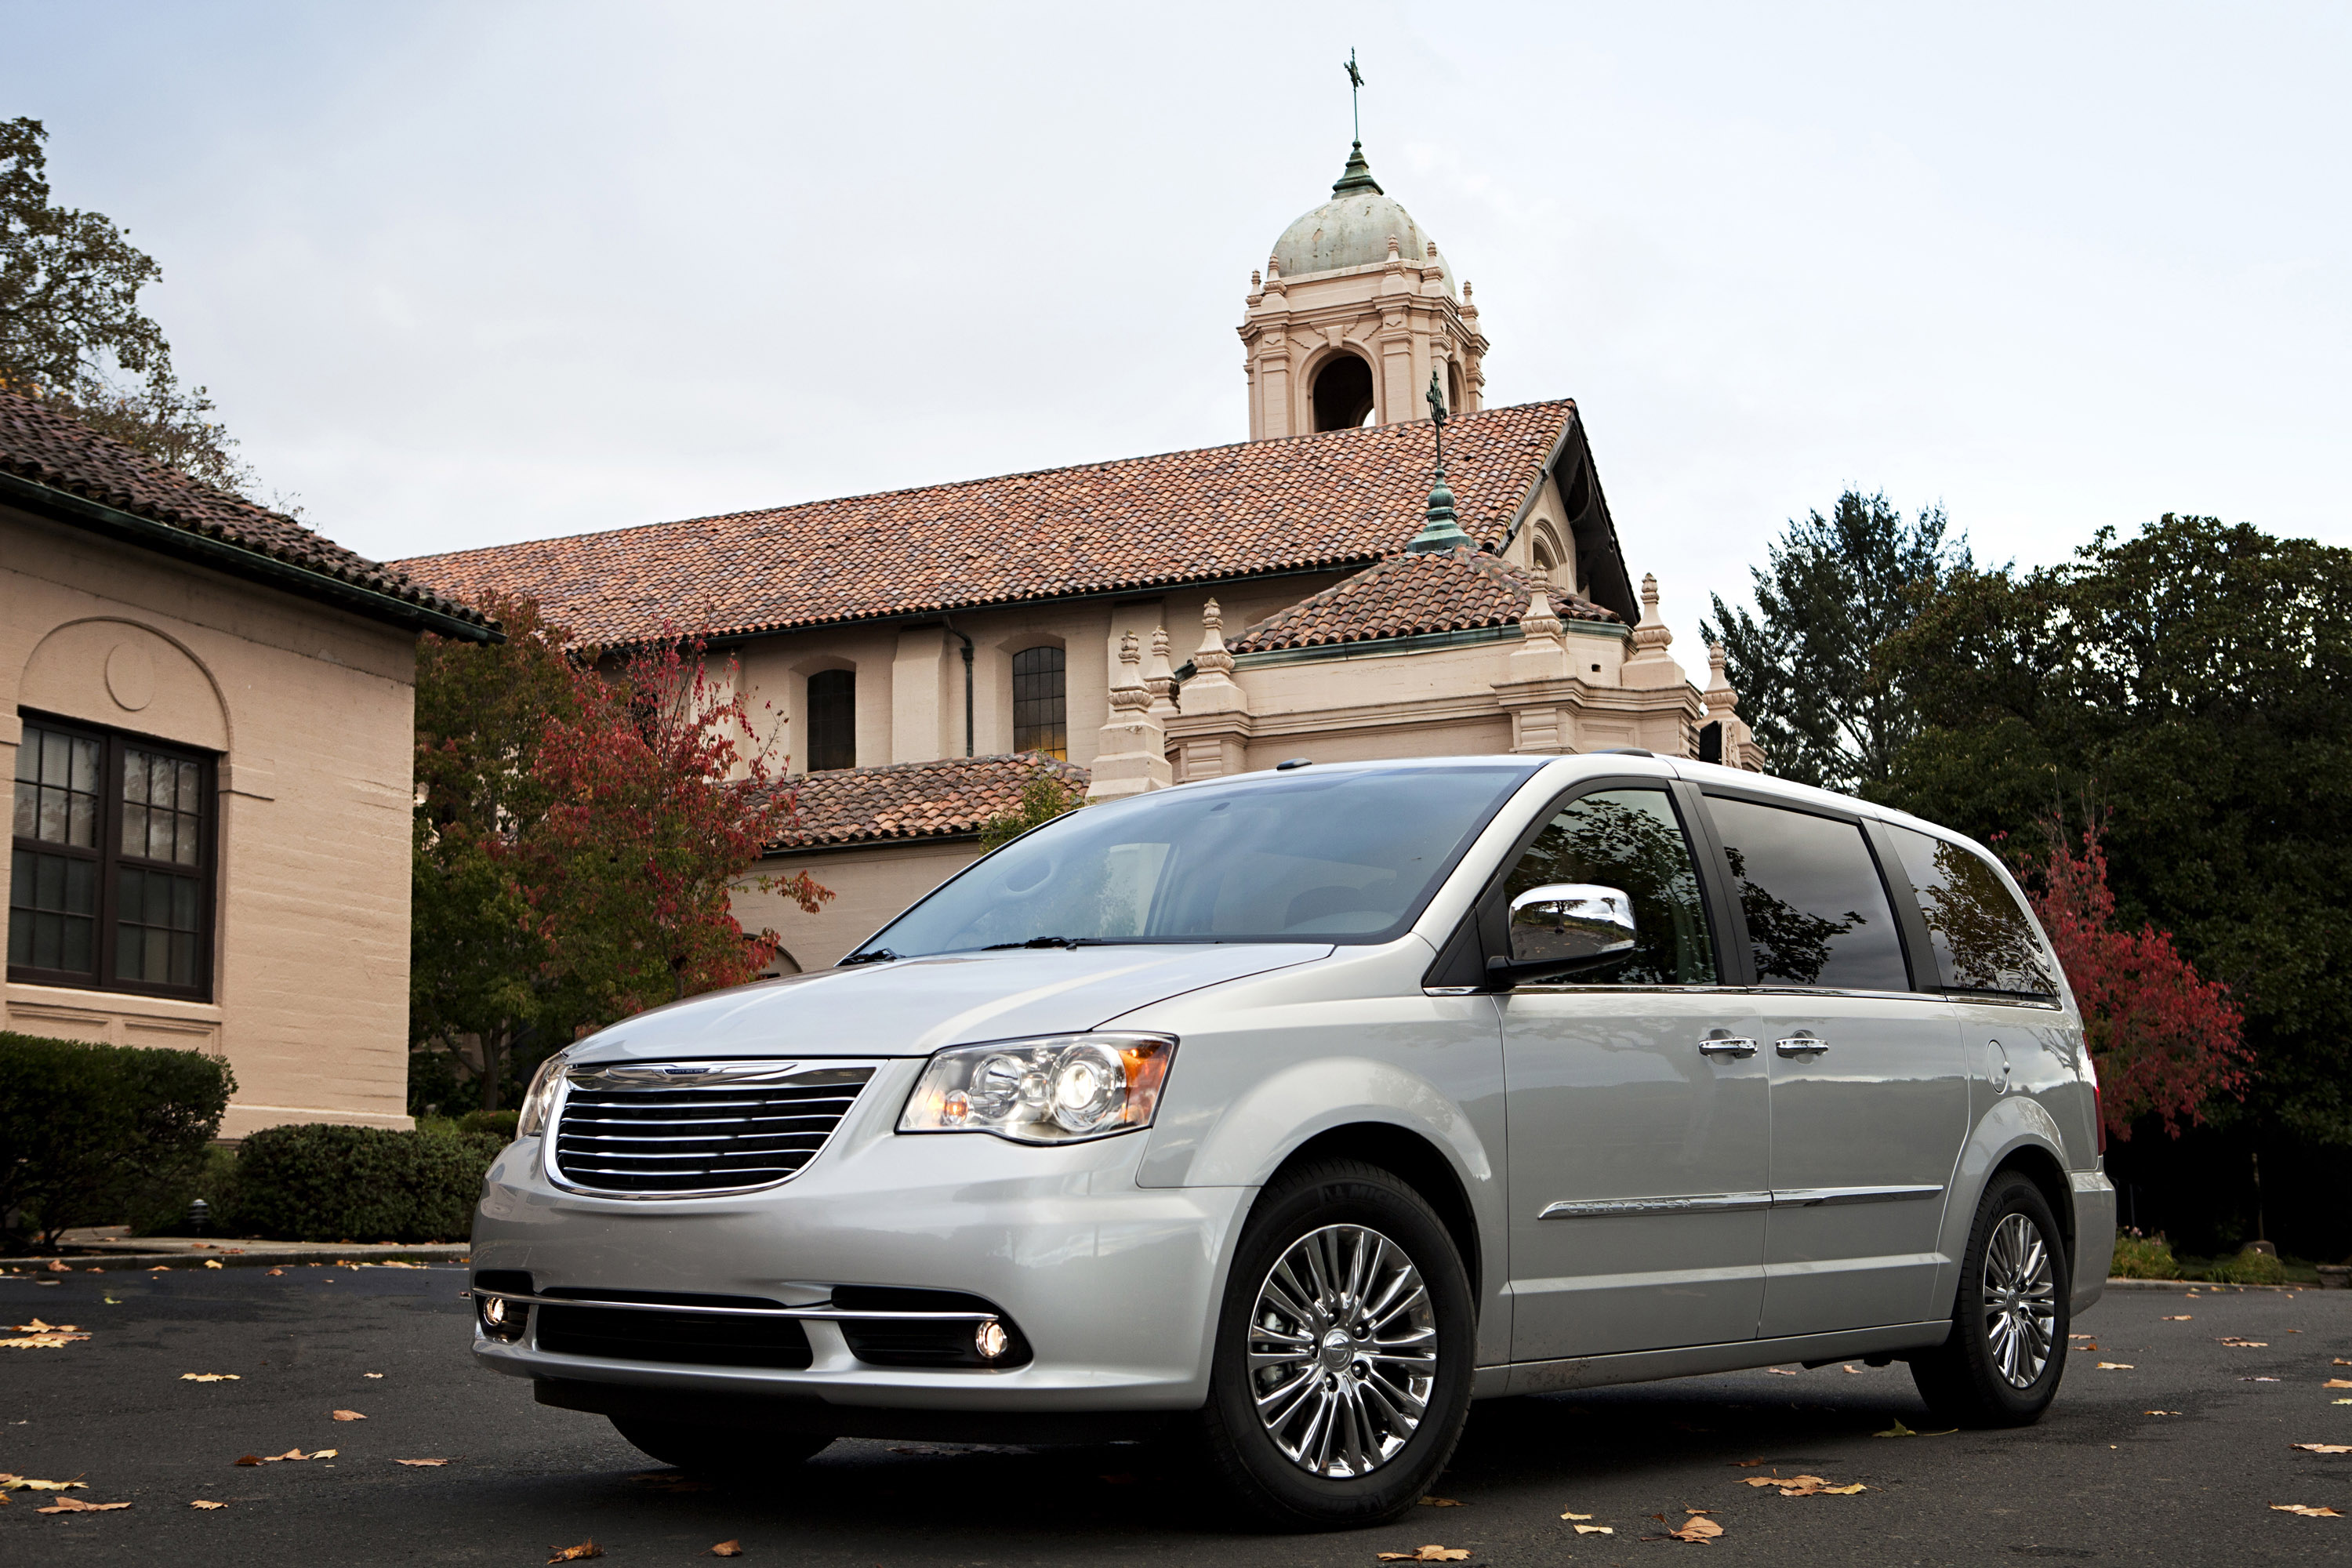 2013 chrysler town and country s picture 77467. Black Bedroom Furniture Sets. Home Design Ideas